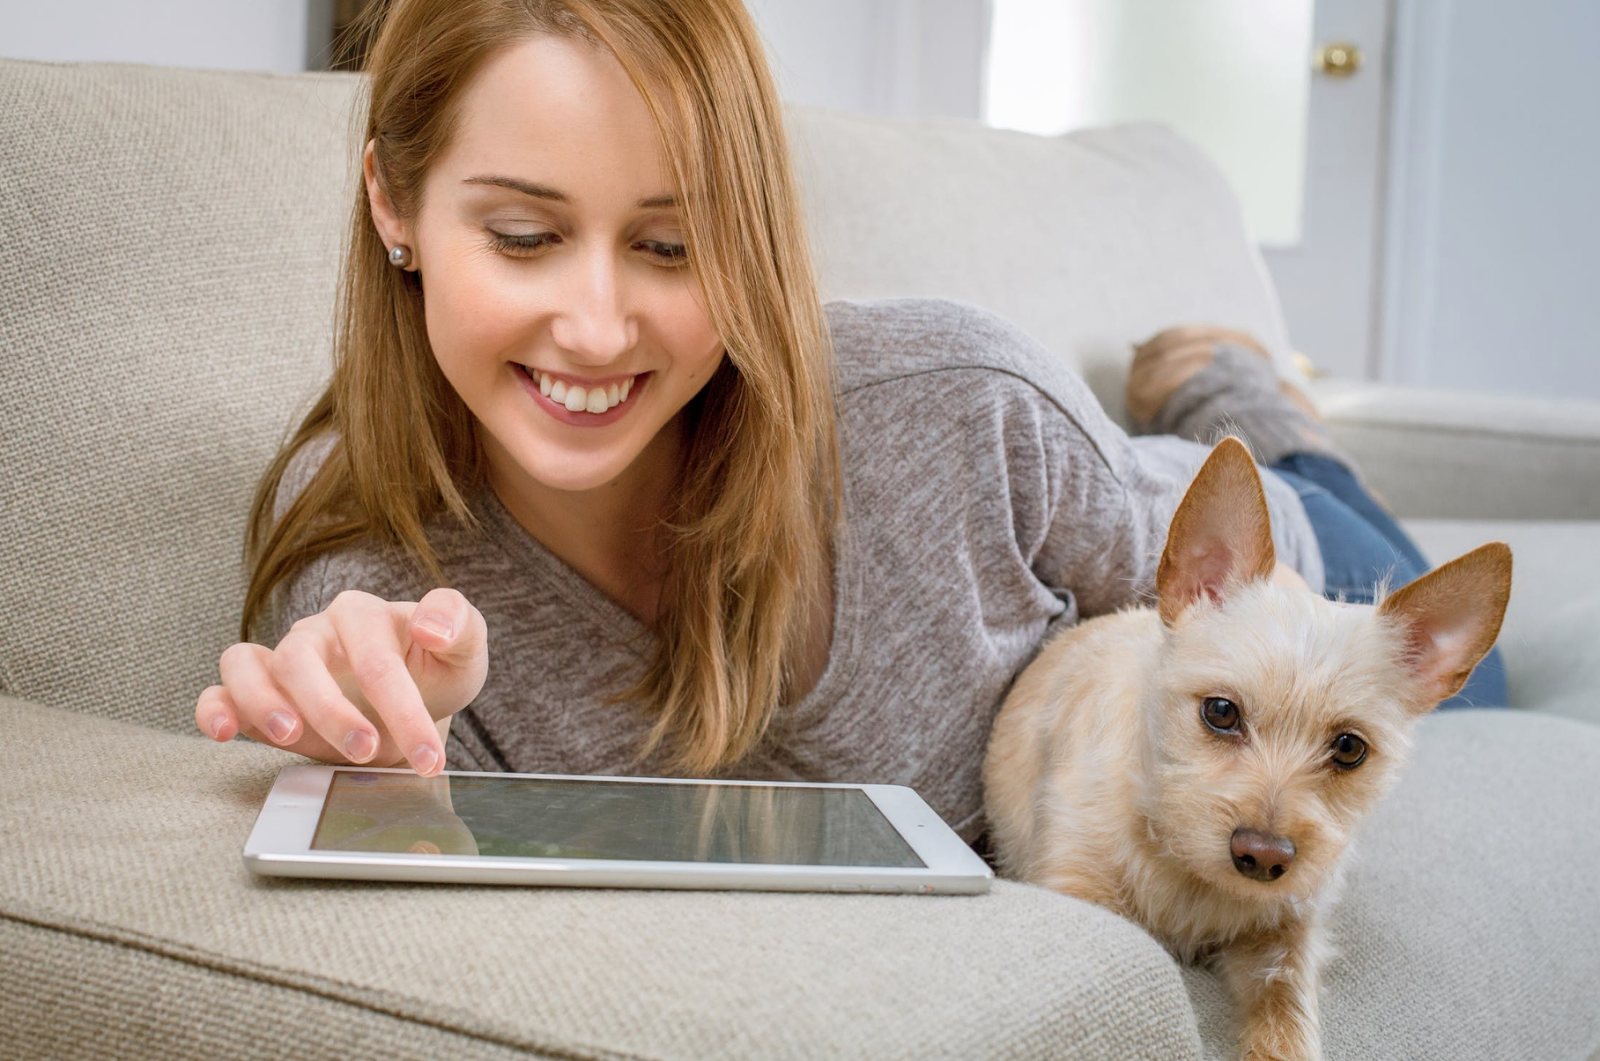 A woman with blonde hair lies on a couch with her dog, using a white tablet to play audiobooks.